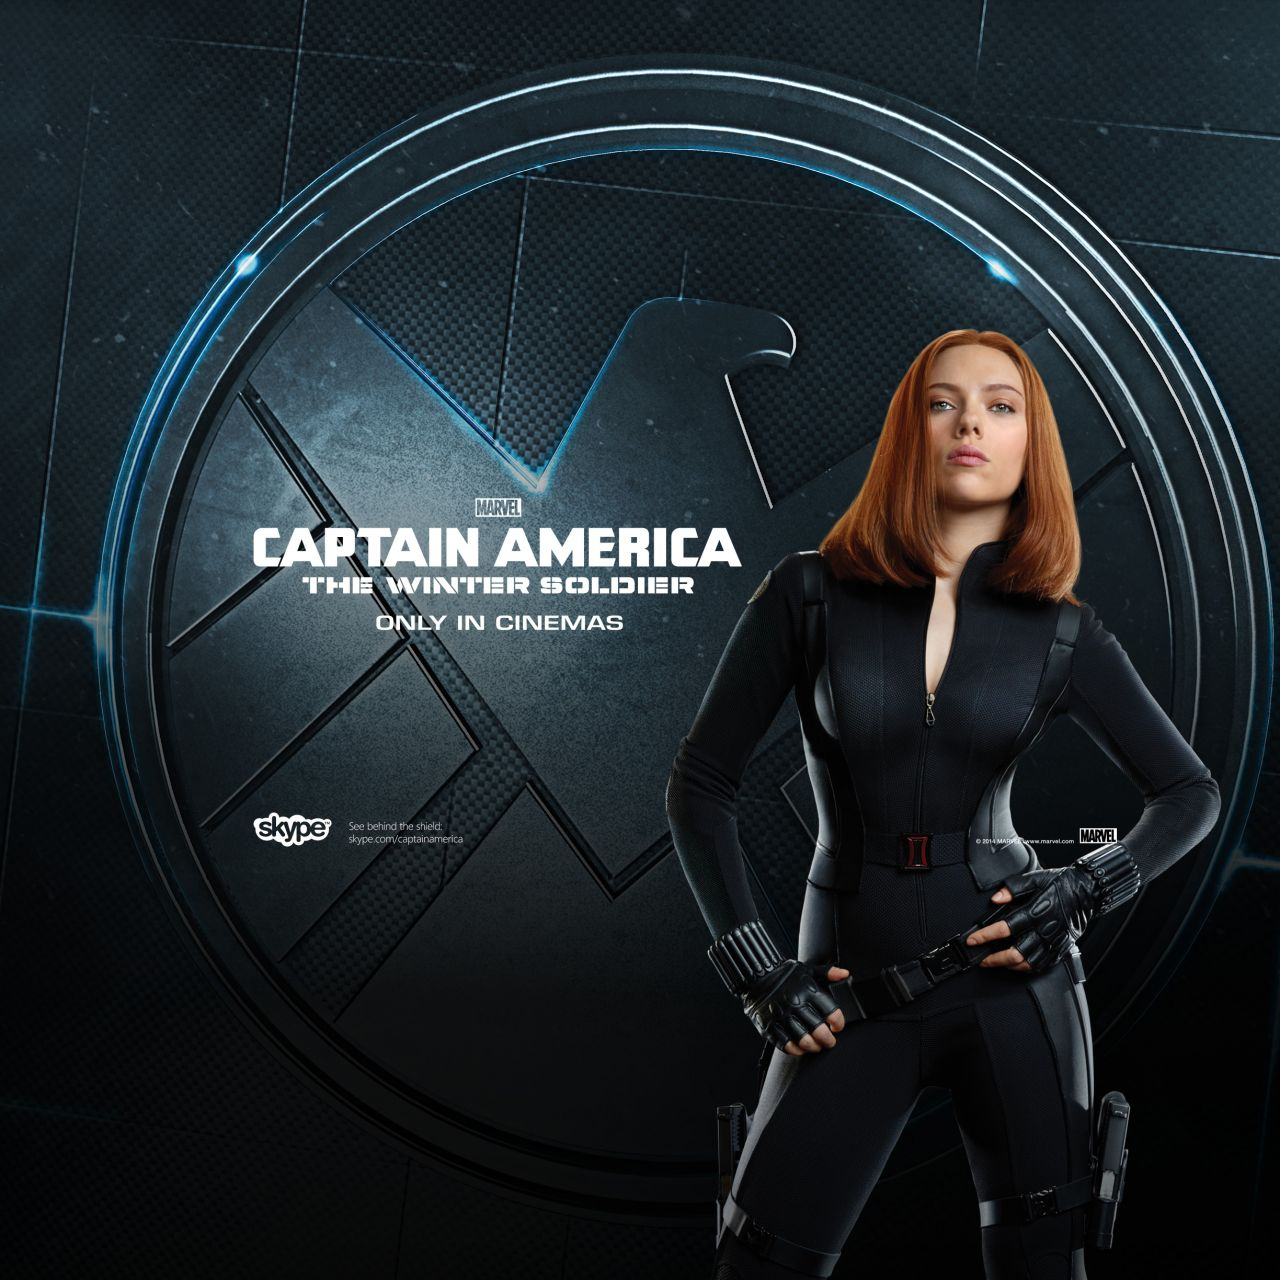 Scarlett Johansson - Captain America: The Winter Soldier Poster